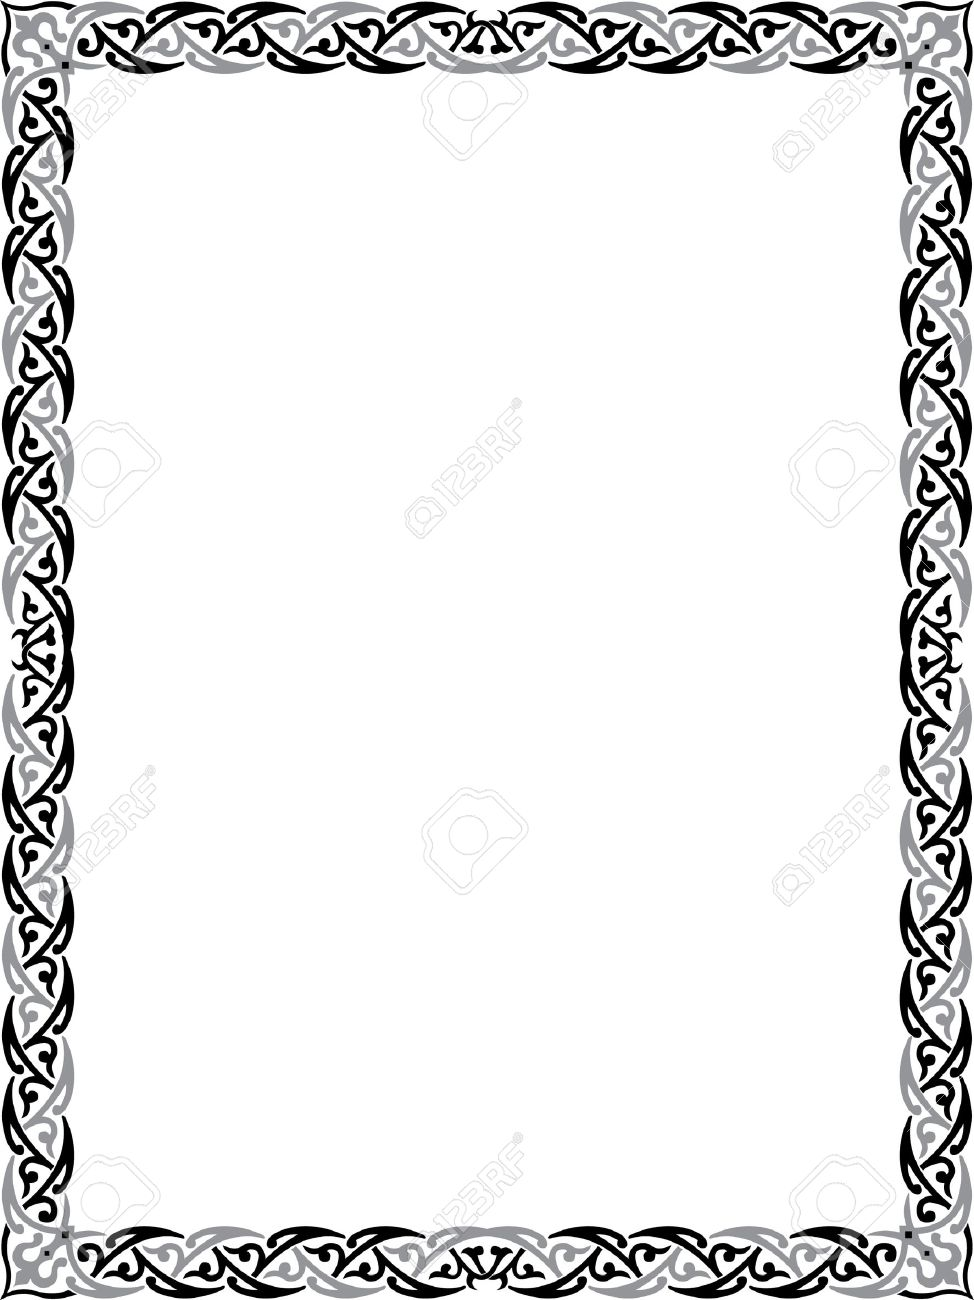 974x1300 Elegant Border Frame Royalty Free Cliparts, Vectors, And Stock